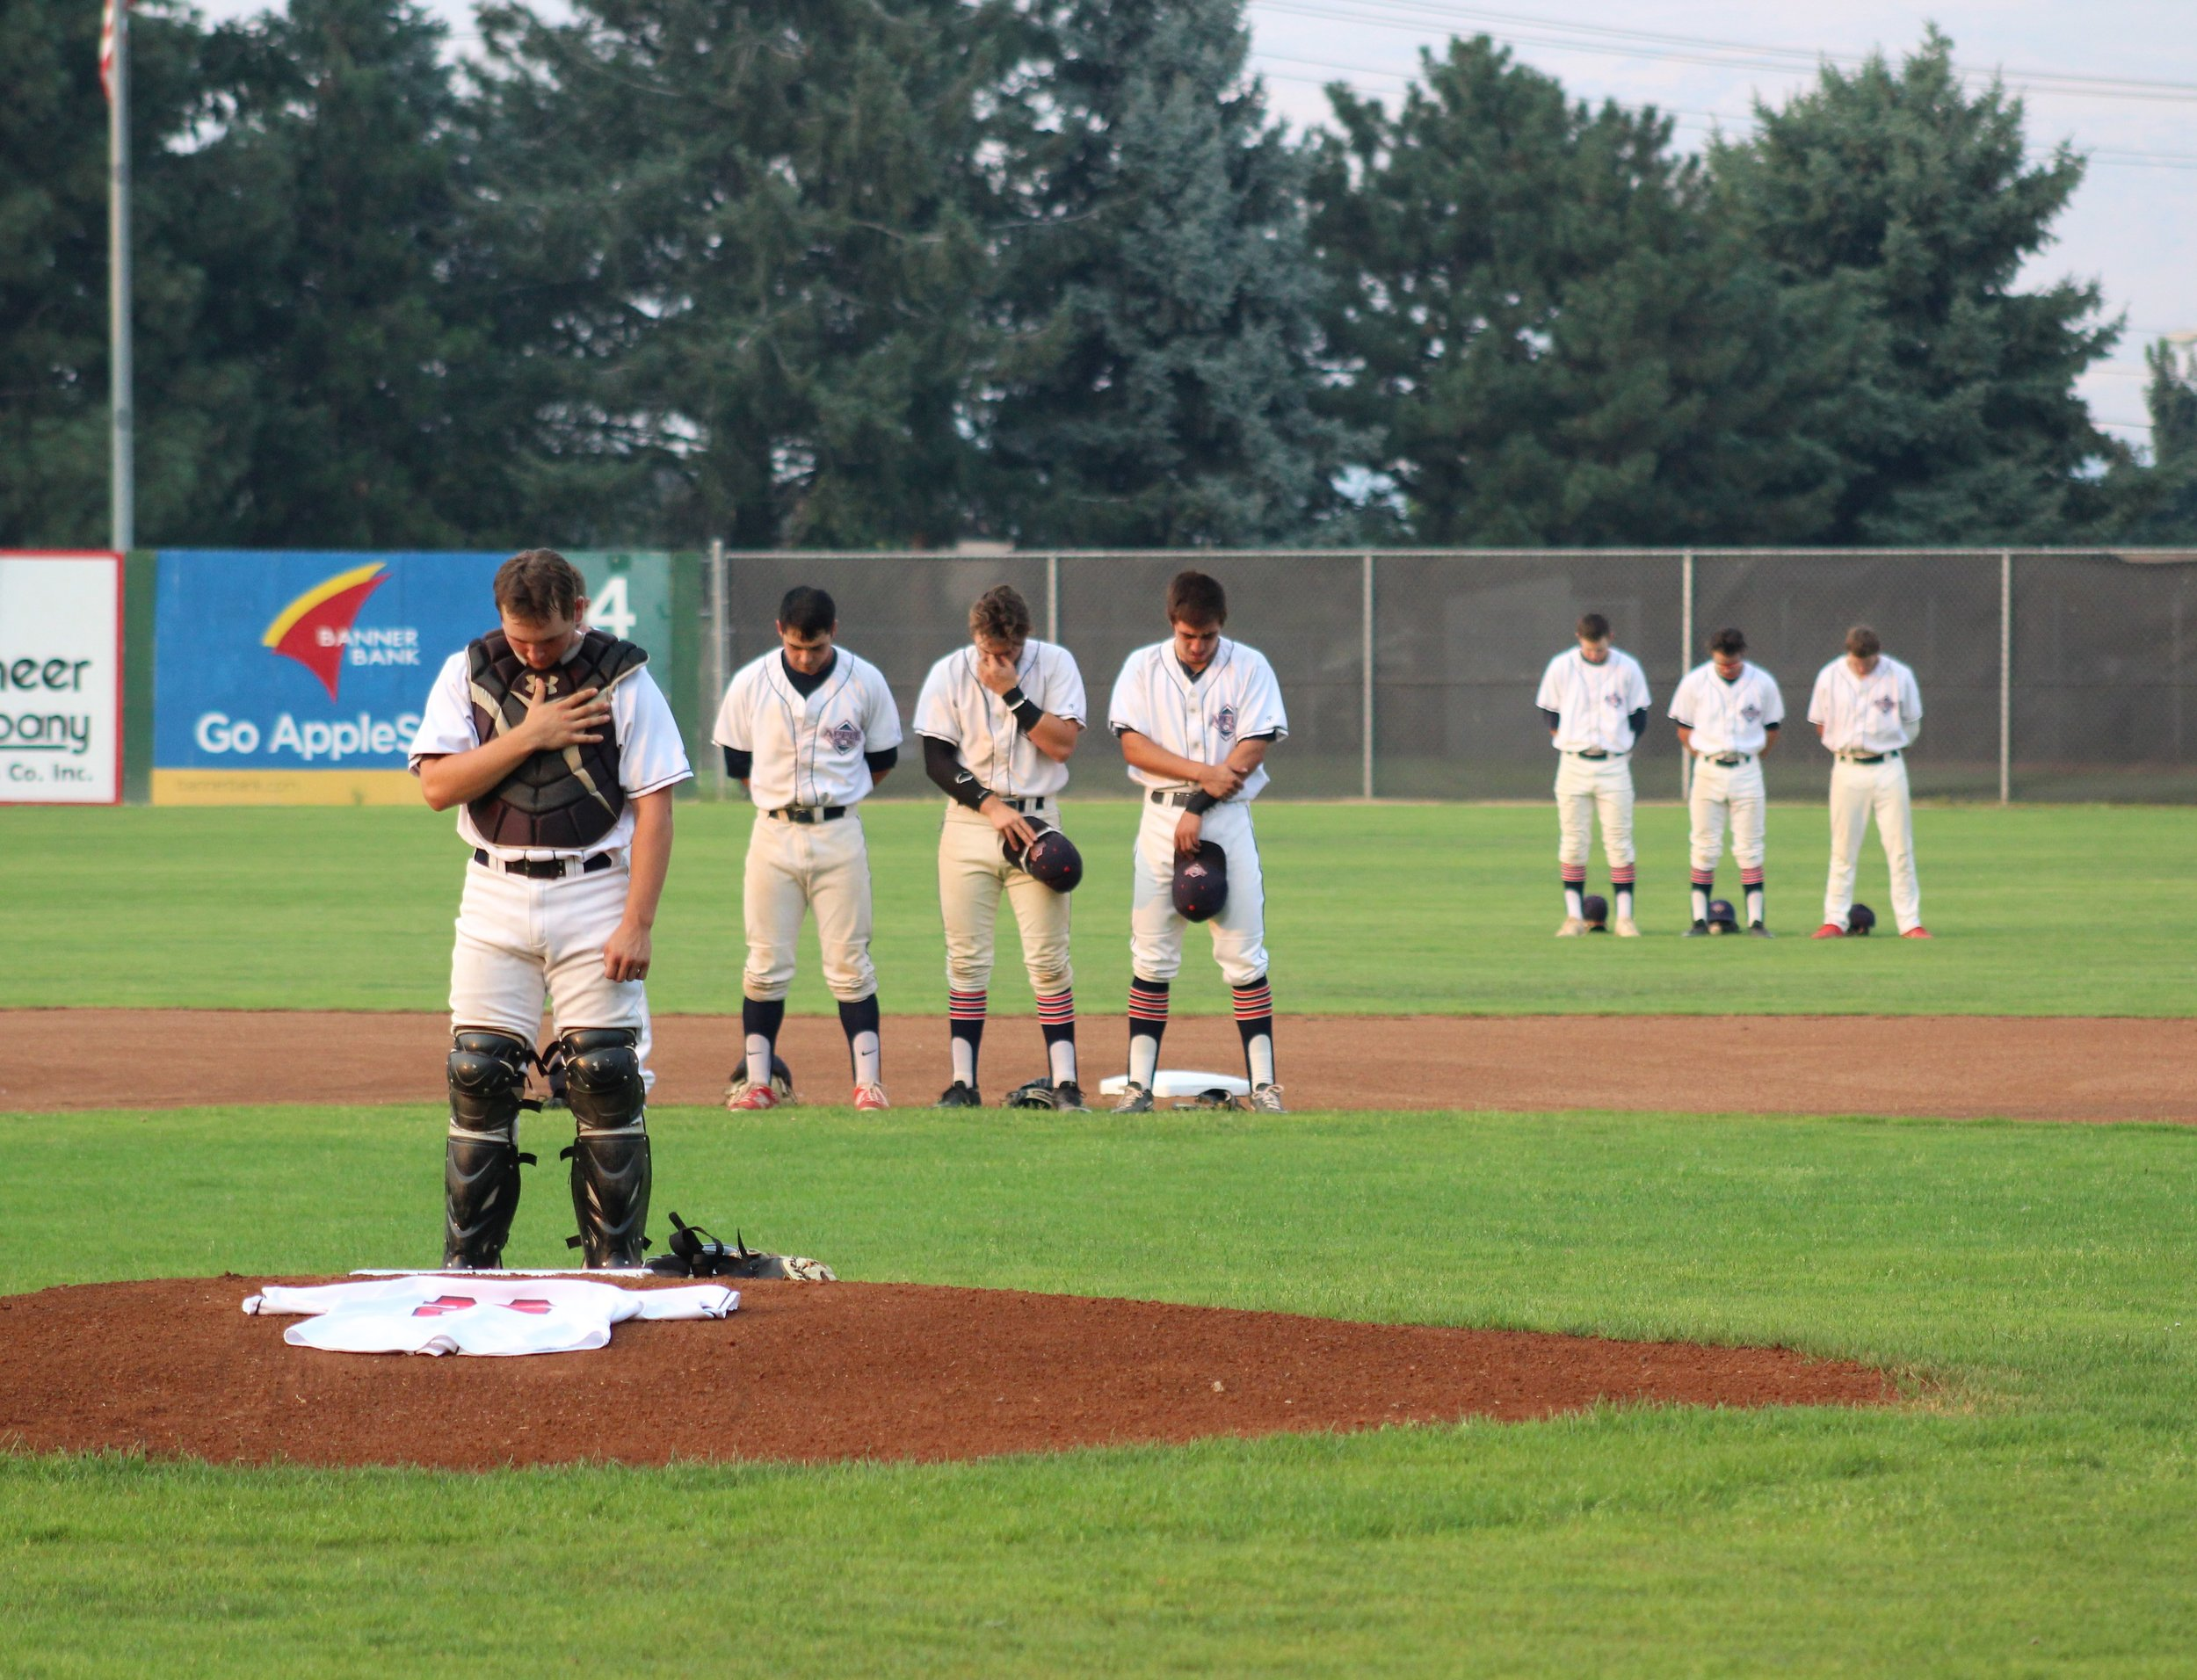 AppleSox players take pause for a moment of silence, Monday night. Wenatchee honored teammate Tommy Watanabe who passed away unexpectedly, Saturday, after playing with the AppleSox through July 22. Watanabe was the team's starting pitcher in the final game of 2017, and they brought his jersey to the mound for the moment of silence and National Anthem. Photo by Alyssa Taylor.